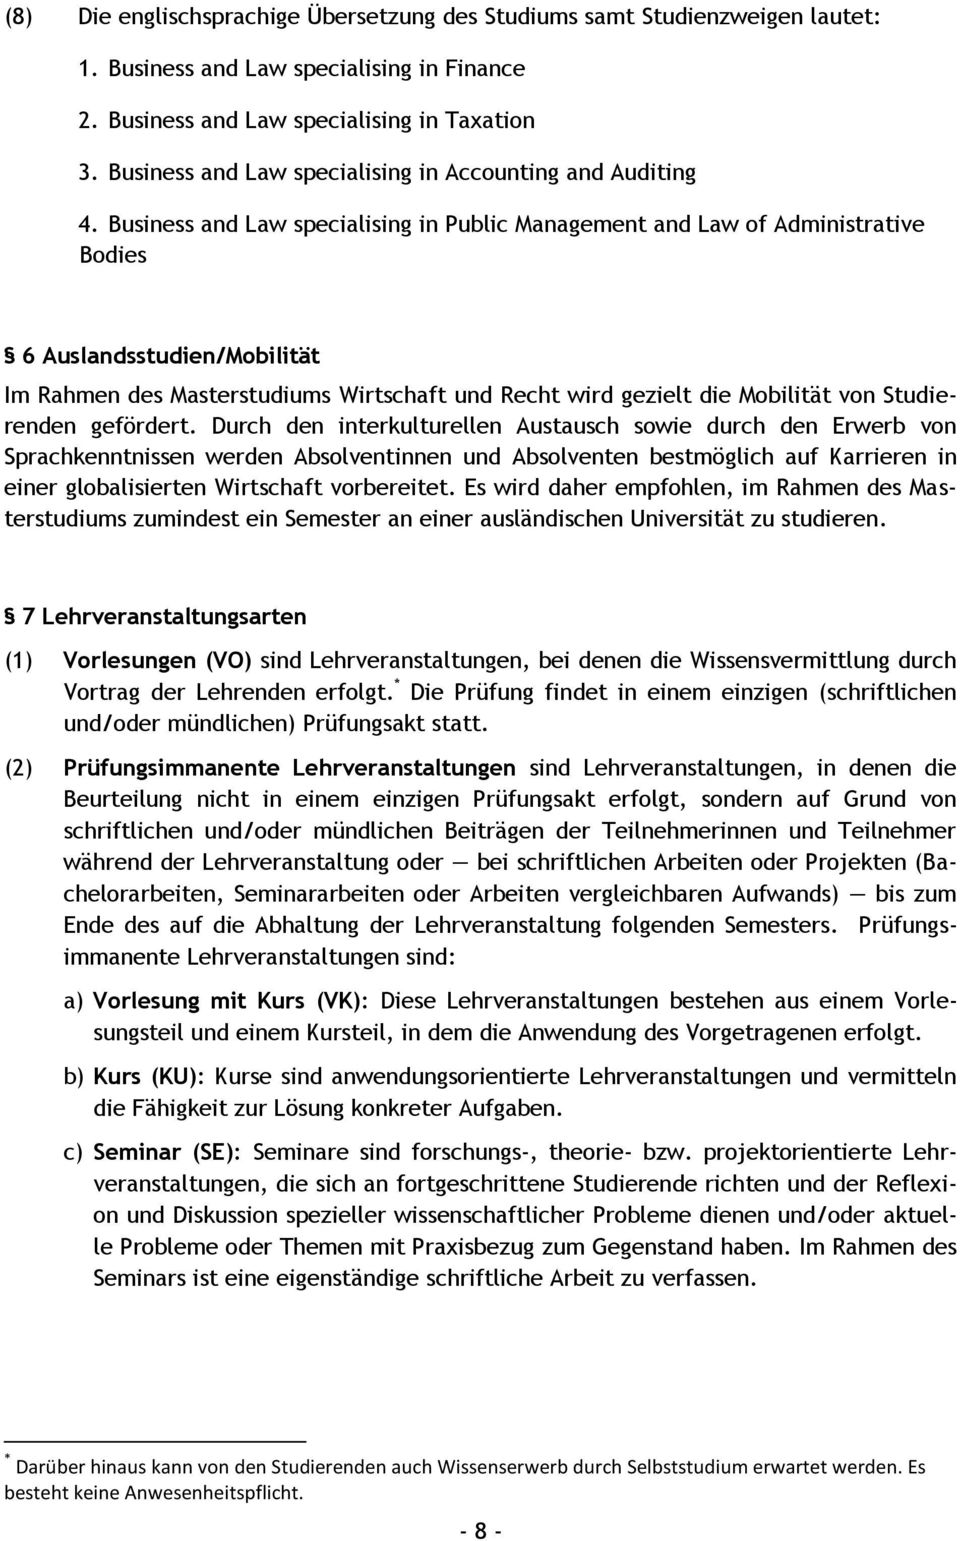 Business and Law specialising in Public Management and Law of Administrative Bodies 6 Auslandsstudien/Mobilität Im Rahmen des Masterstudiums Wirtschaft und Recht wird gezielt die Mobilität von